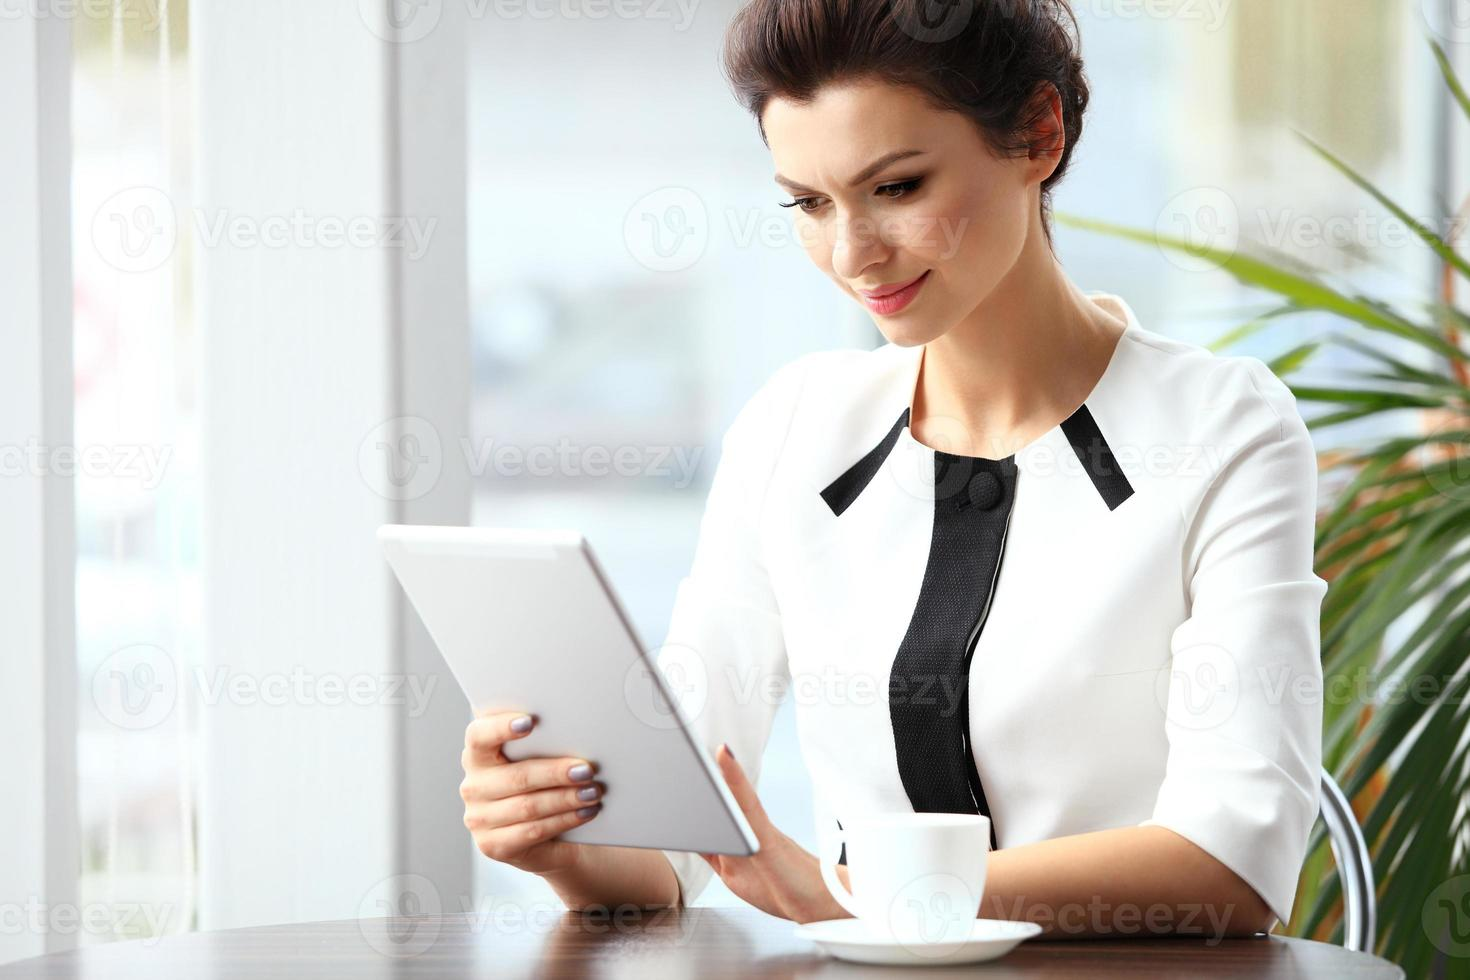 Pensive businesswoman reading an article on tablet computer photo